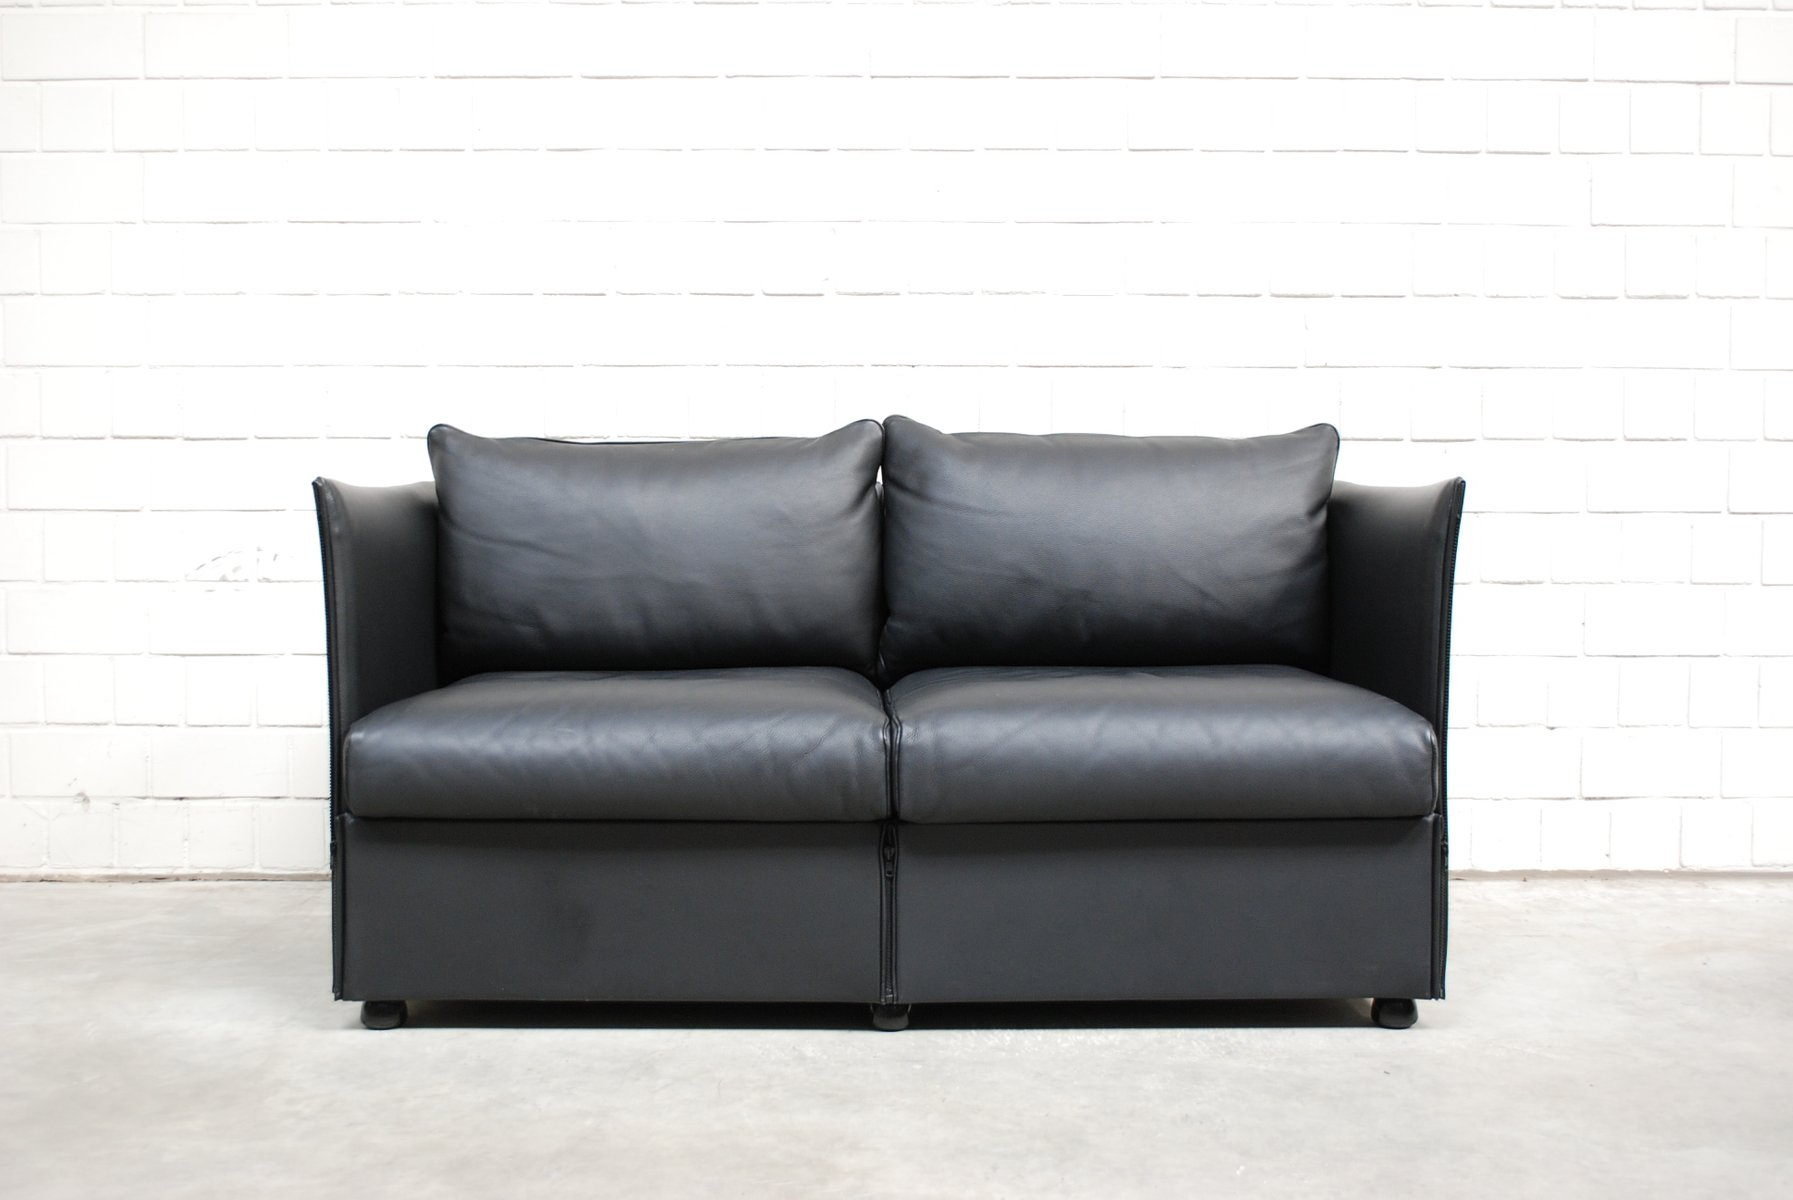 model landeau leather sofa by mario bellini for cassina. Black Bedroom Furniture Sets. Home Design Ideas